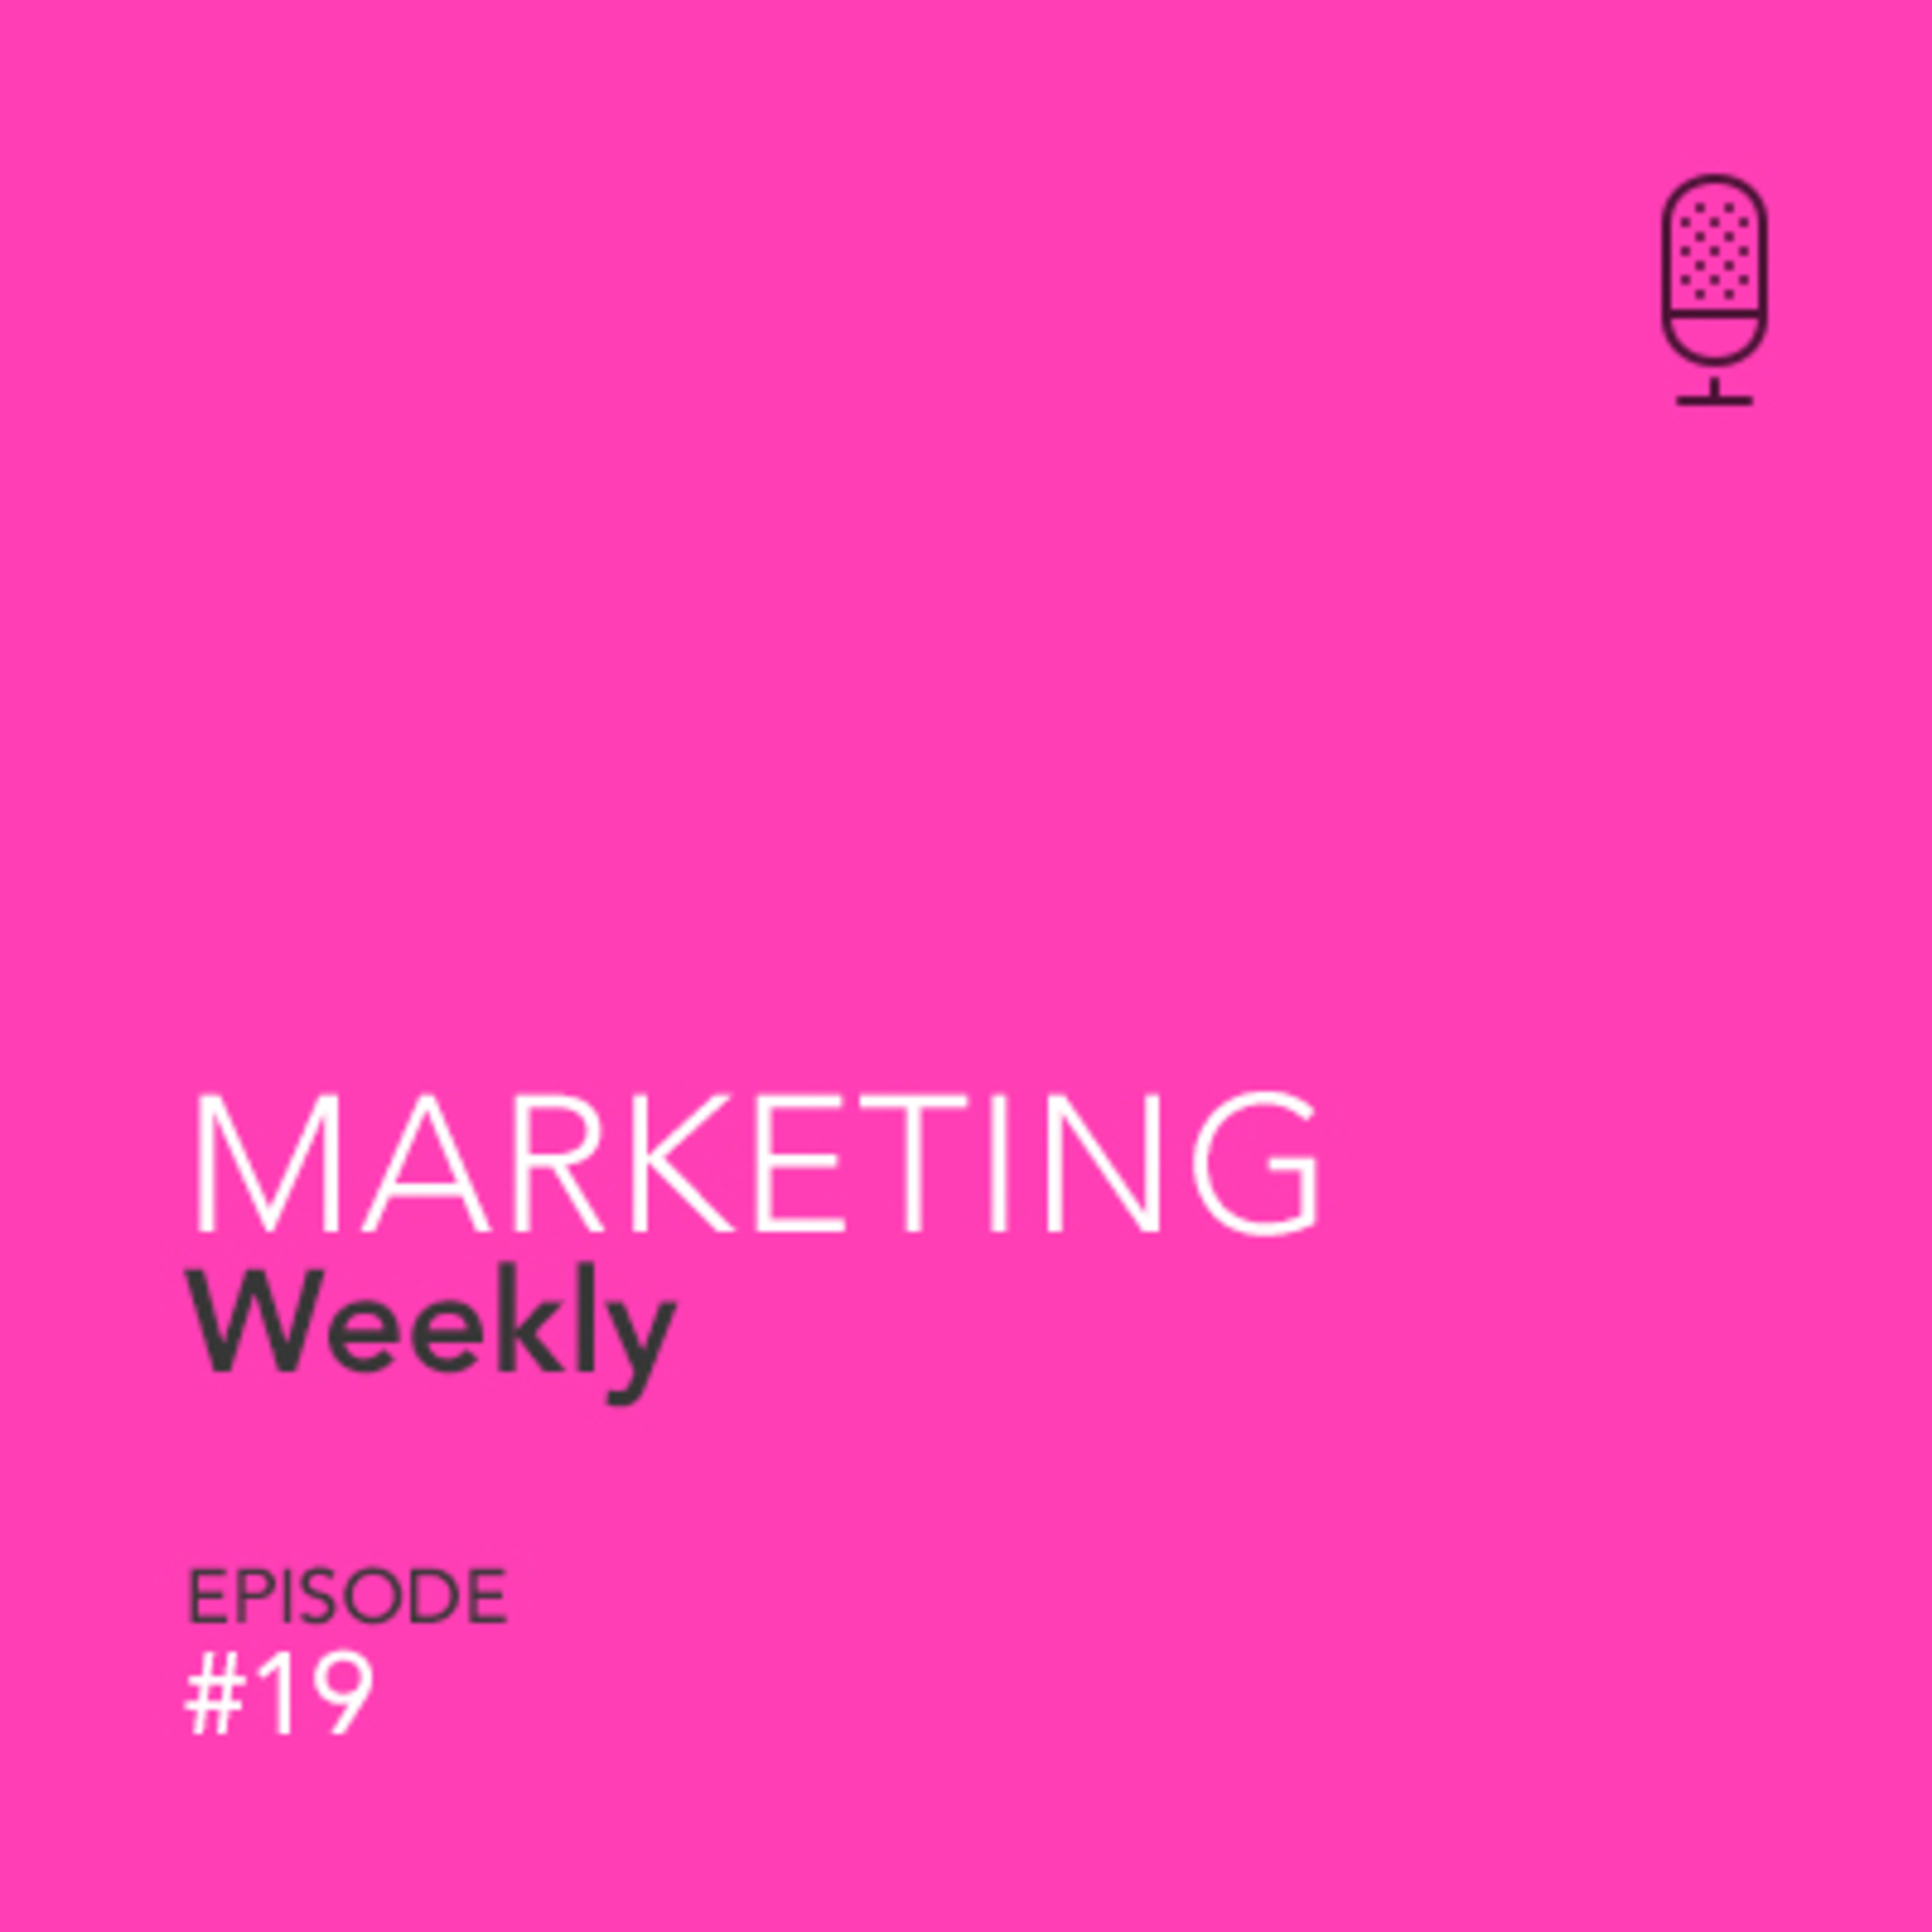 Marketing W19 - Backlink strategy, Mailing List Updates & On the Portuguese top 100 startups?!